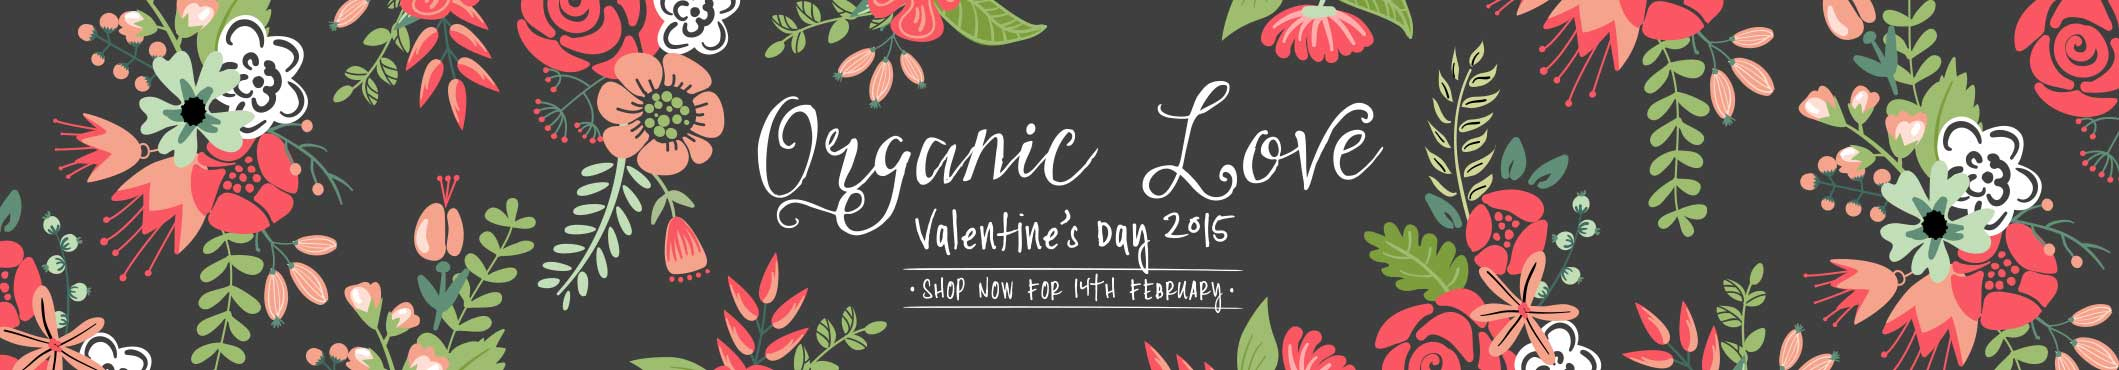 Organic Love - Valentines Day 2015 - Shop now for 14th February at Flowers for Everyone